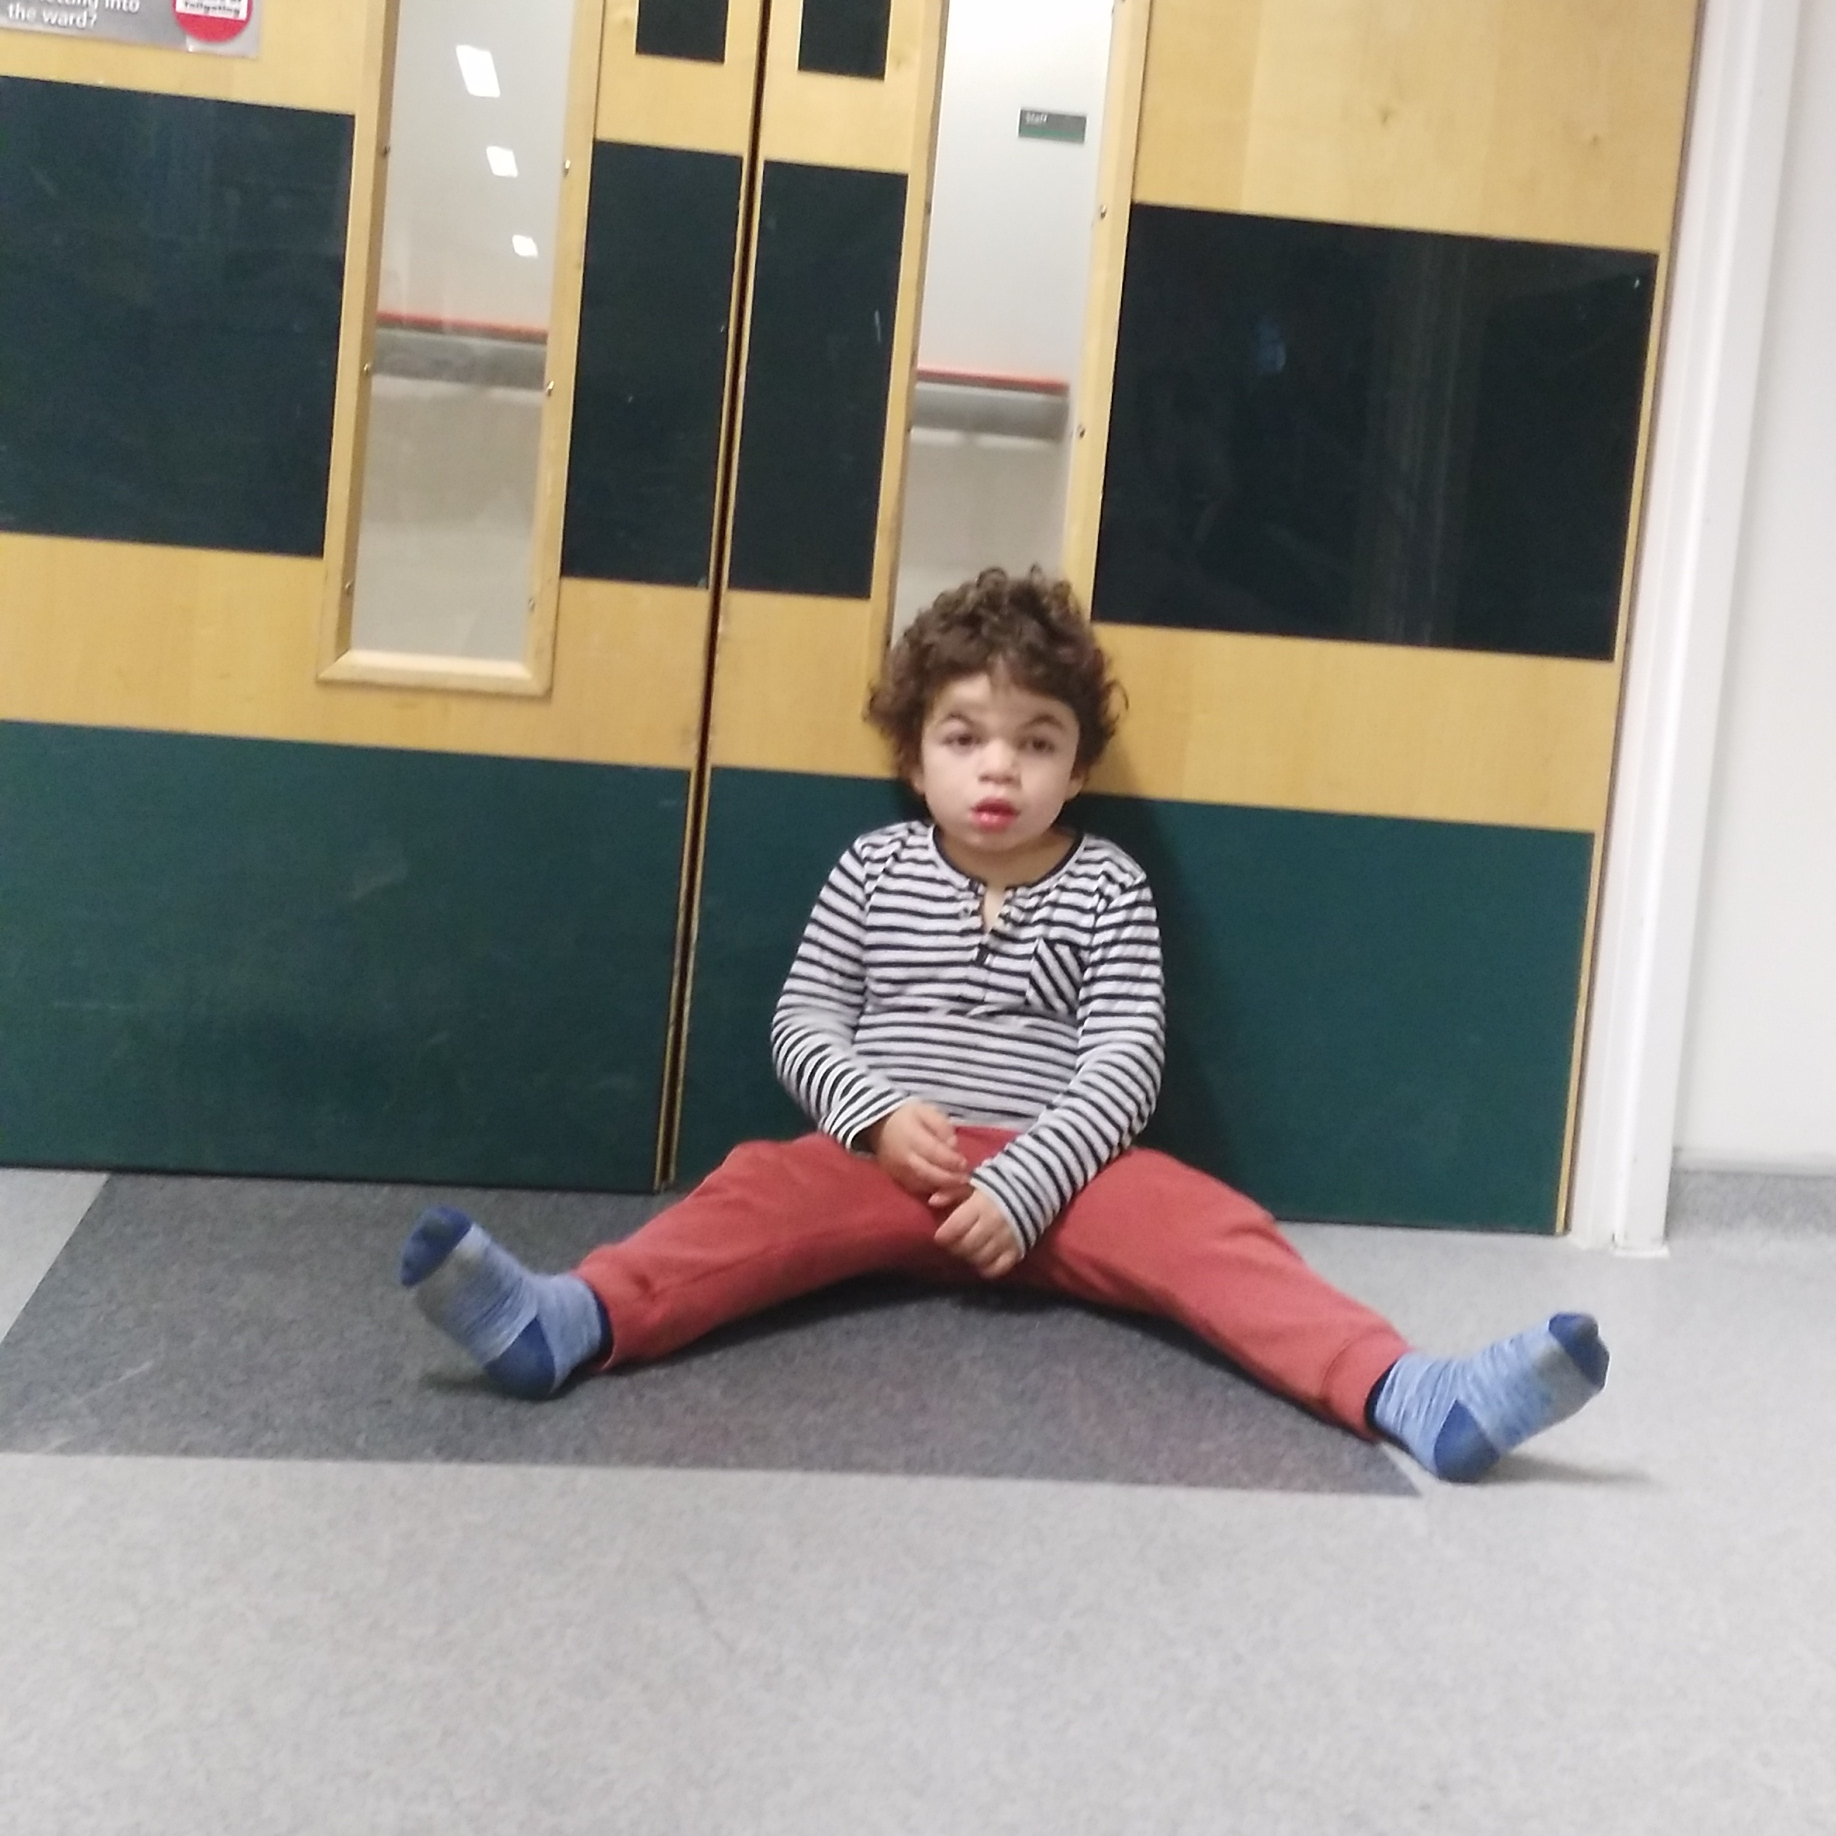 Pudding sitting on the floor by hospital ward doors.